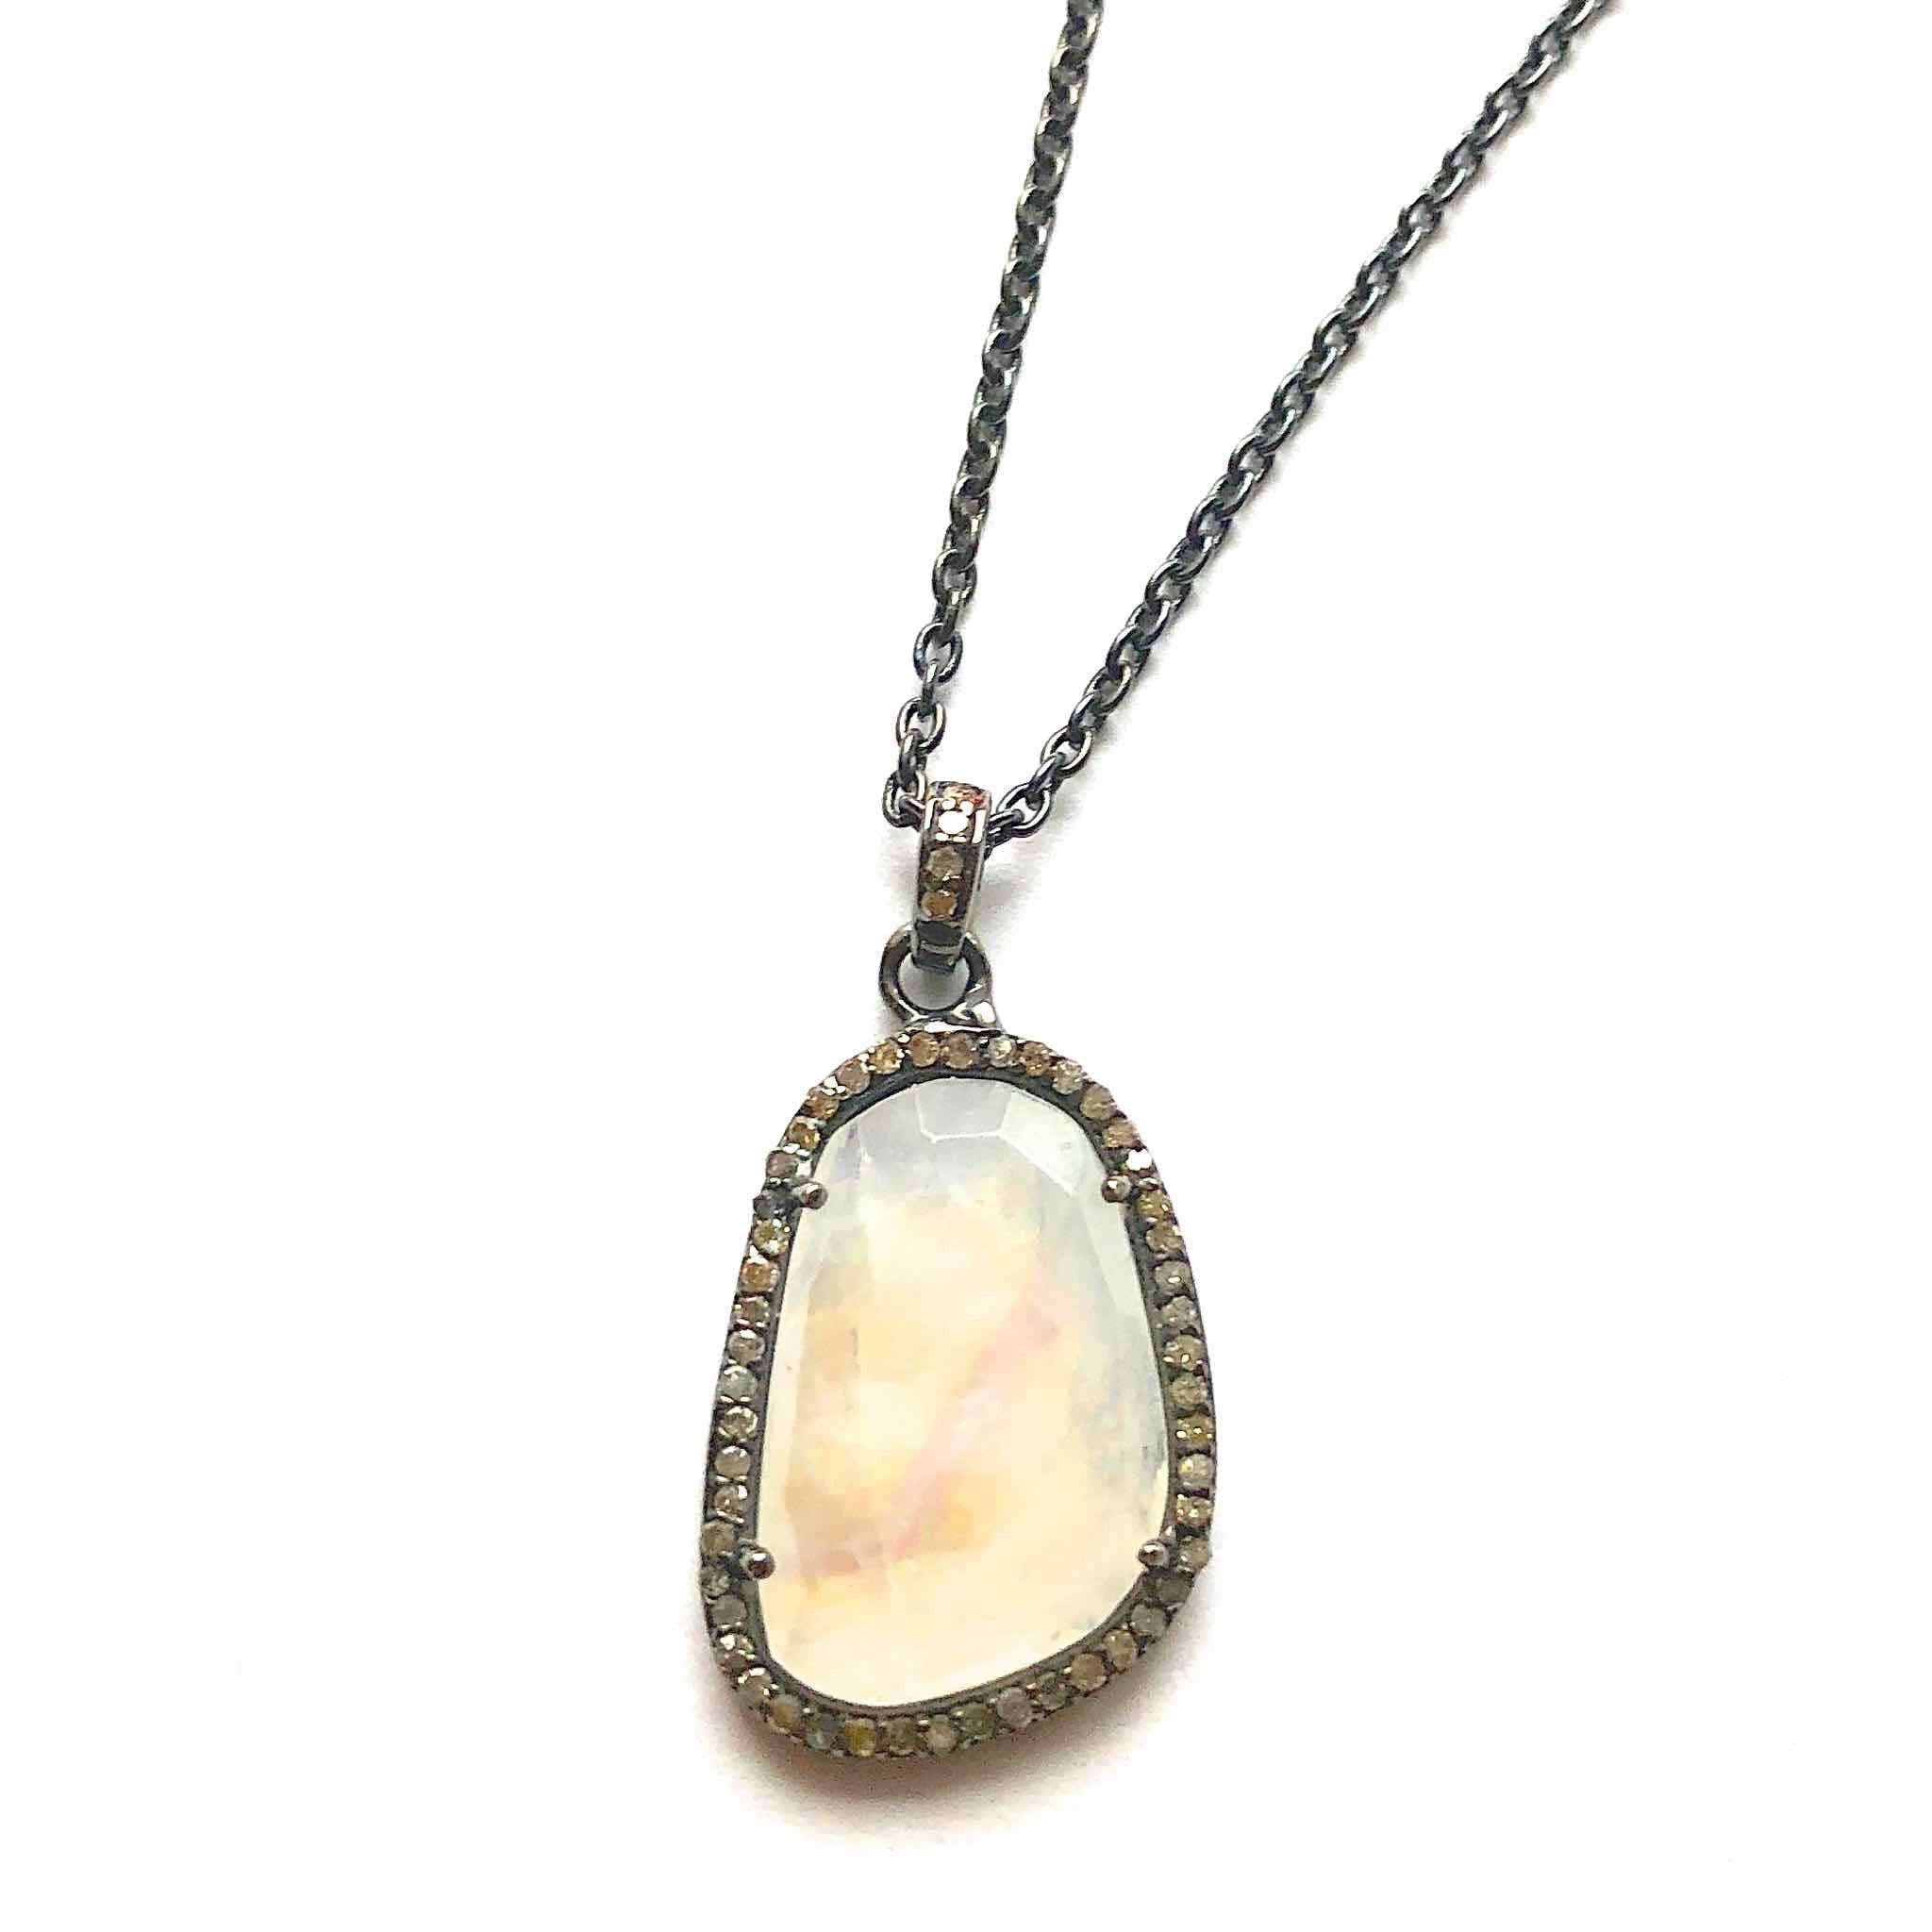 Moonstone with Diamond Accent Pendant on Black Delicate Chain Necklace